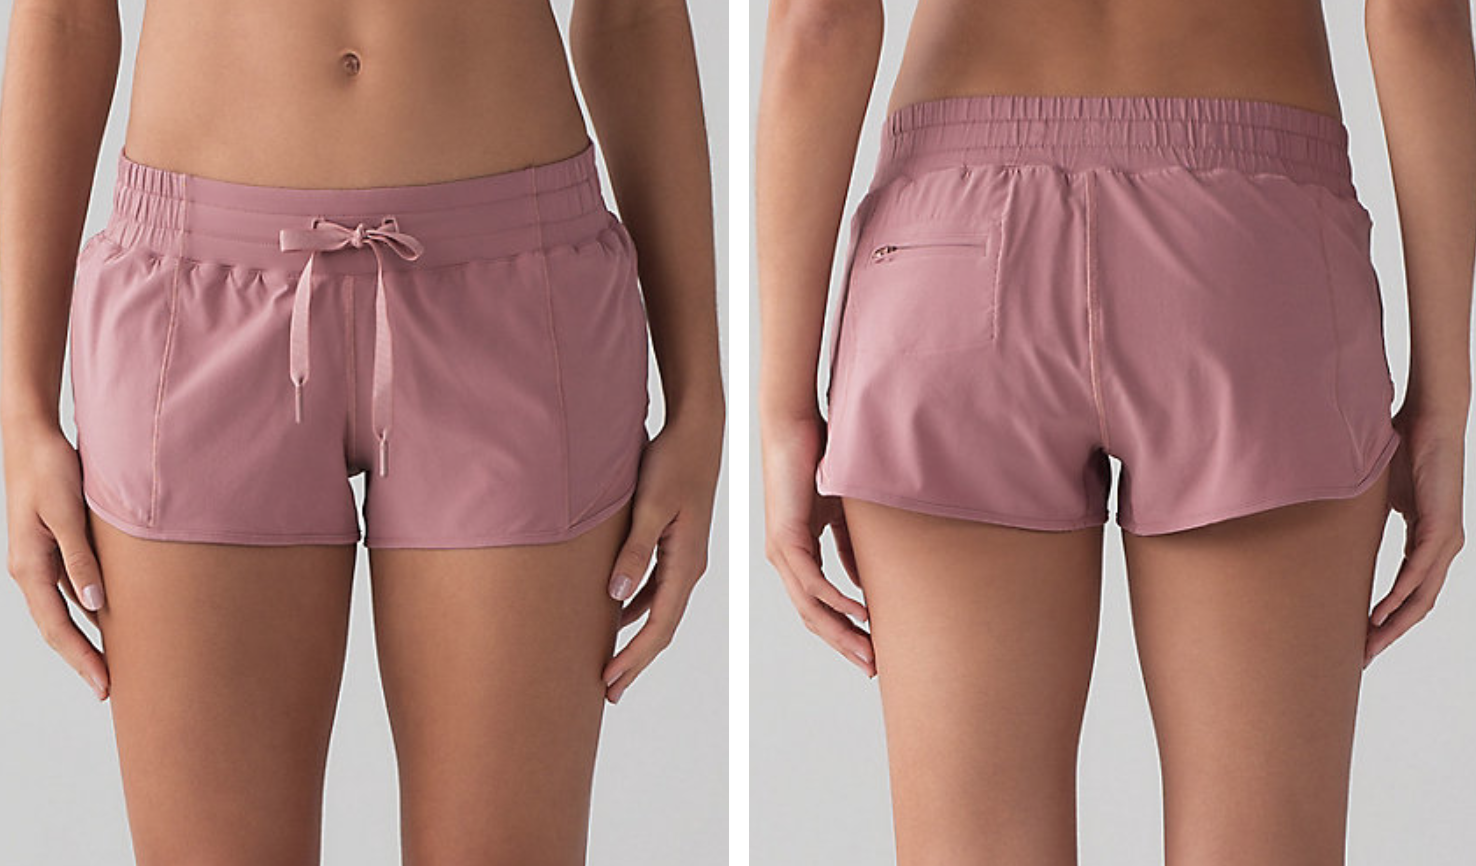 https://api.shopstyle.com/action/apiVisitRetailer?url=https%3A%2F%2Fshop.lululemon.com%2Fp%2Fwomen-shorts%2FHotty-Hot-Short%2F_%2Fprod6980004%3Frcnt%3D30%26N%3D1z13ziiZ7vf%26cnt%3D63%26color%3DLW7ACPR_028896&site=www.shopstyle.ca&pid=uid6784-25288972-7